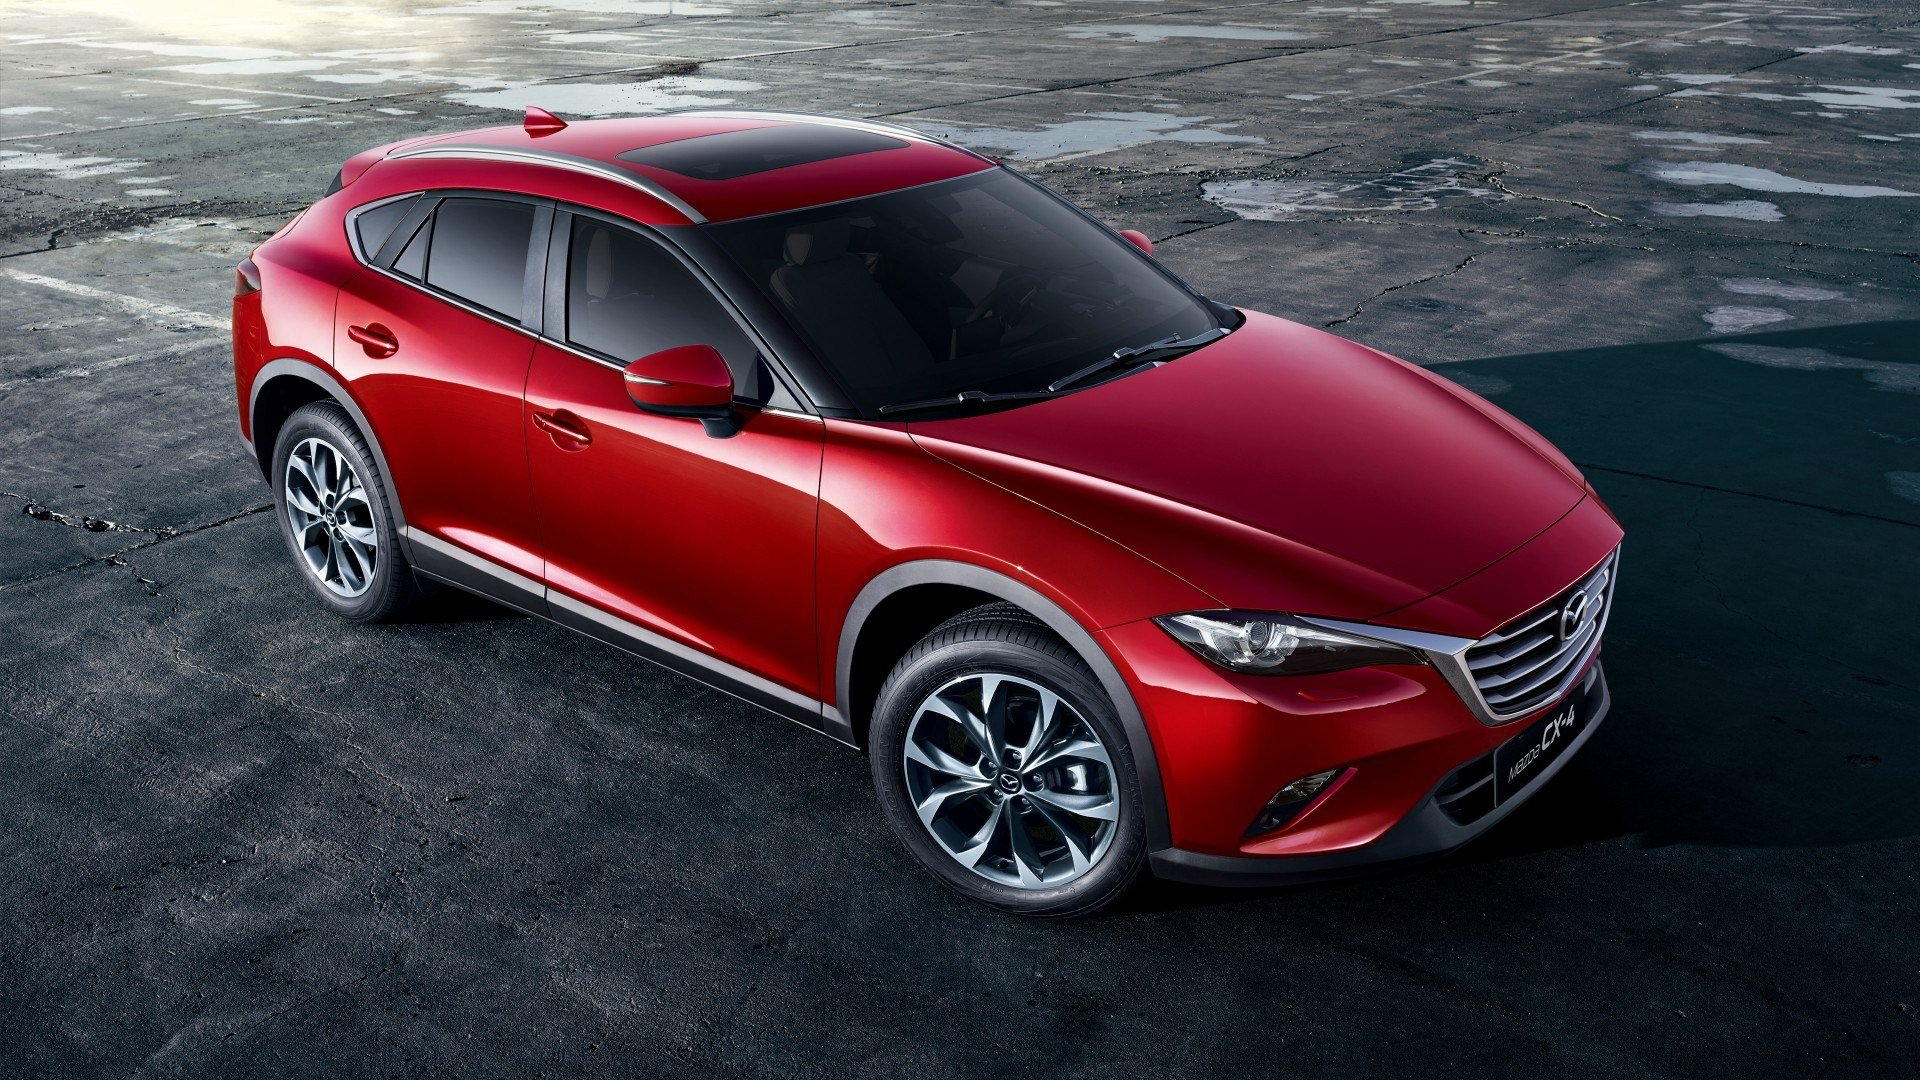 Latest 2017 Mazda Cx 4 4K Wallpaper Hd Car Wallpapers Id 6725 Free Download